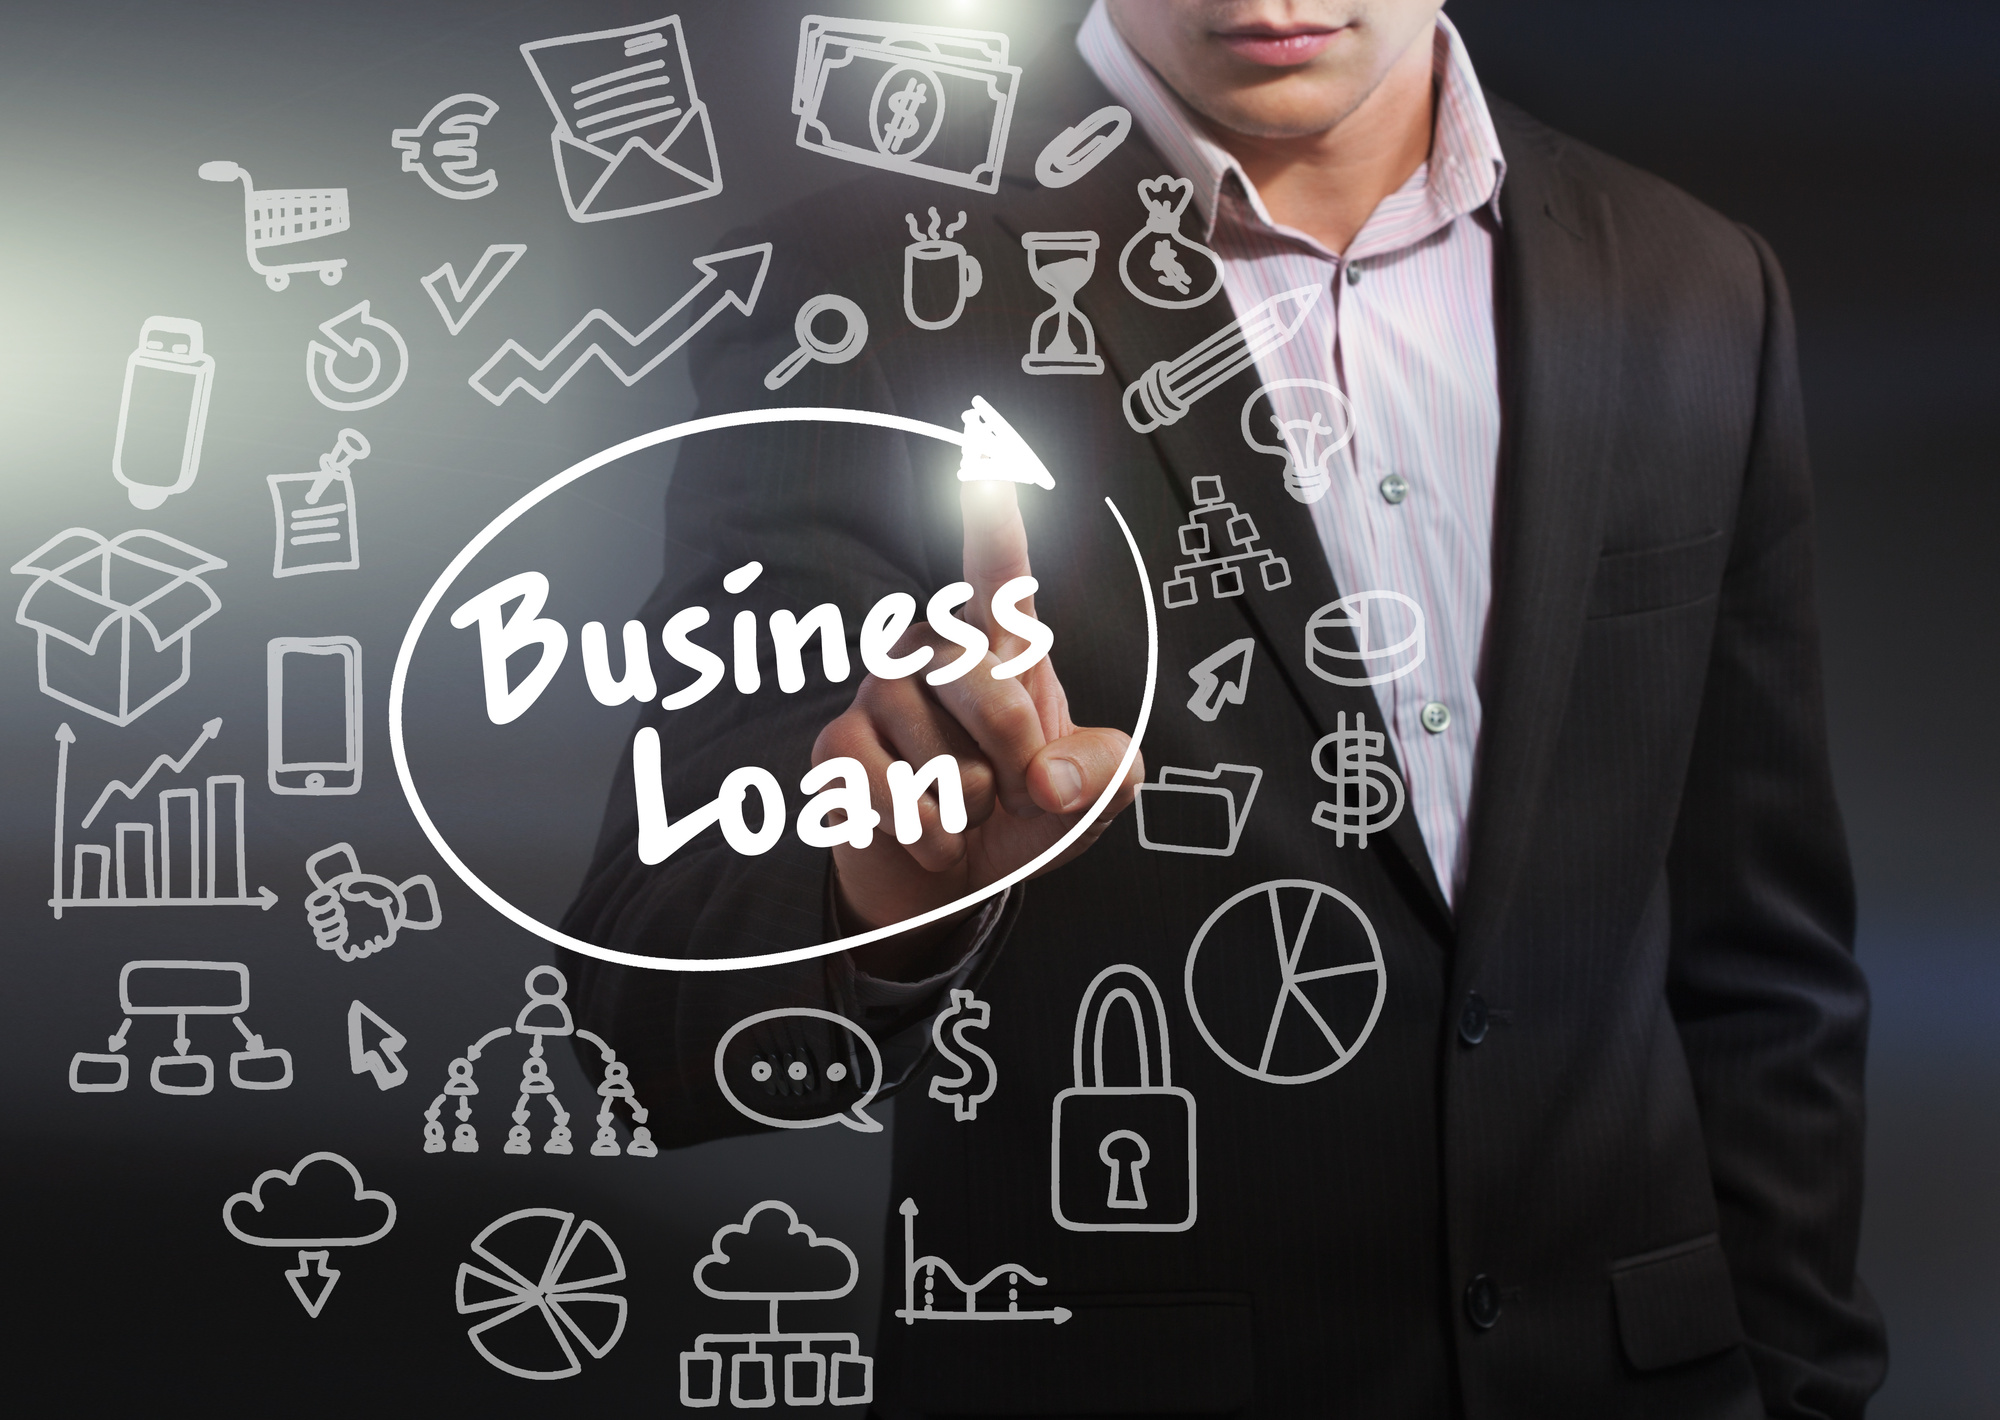 Startup Success: 7 Tips to Help You Get a Business Loan ASAP